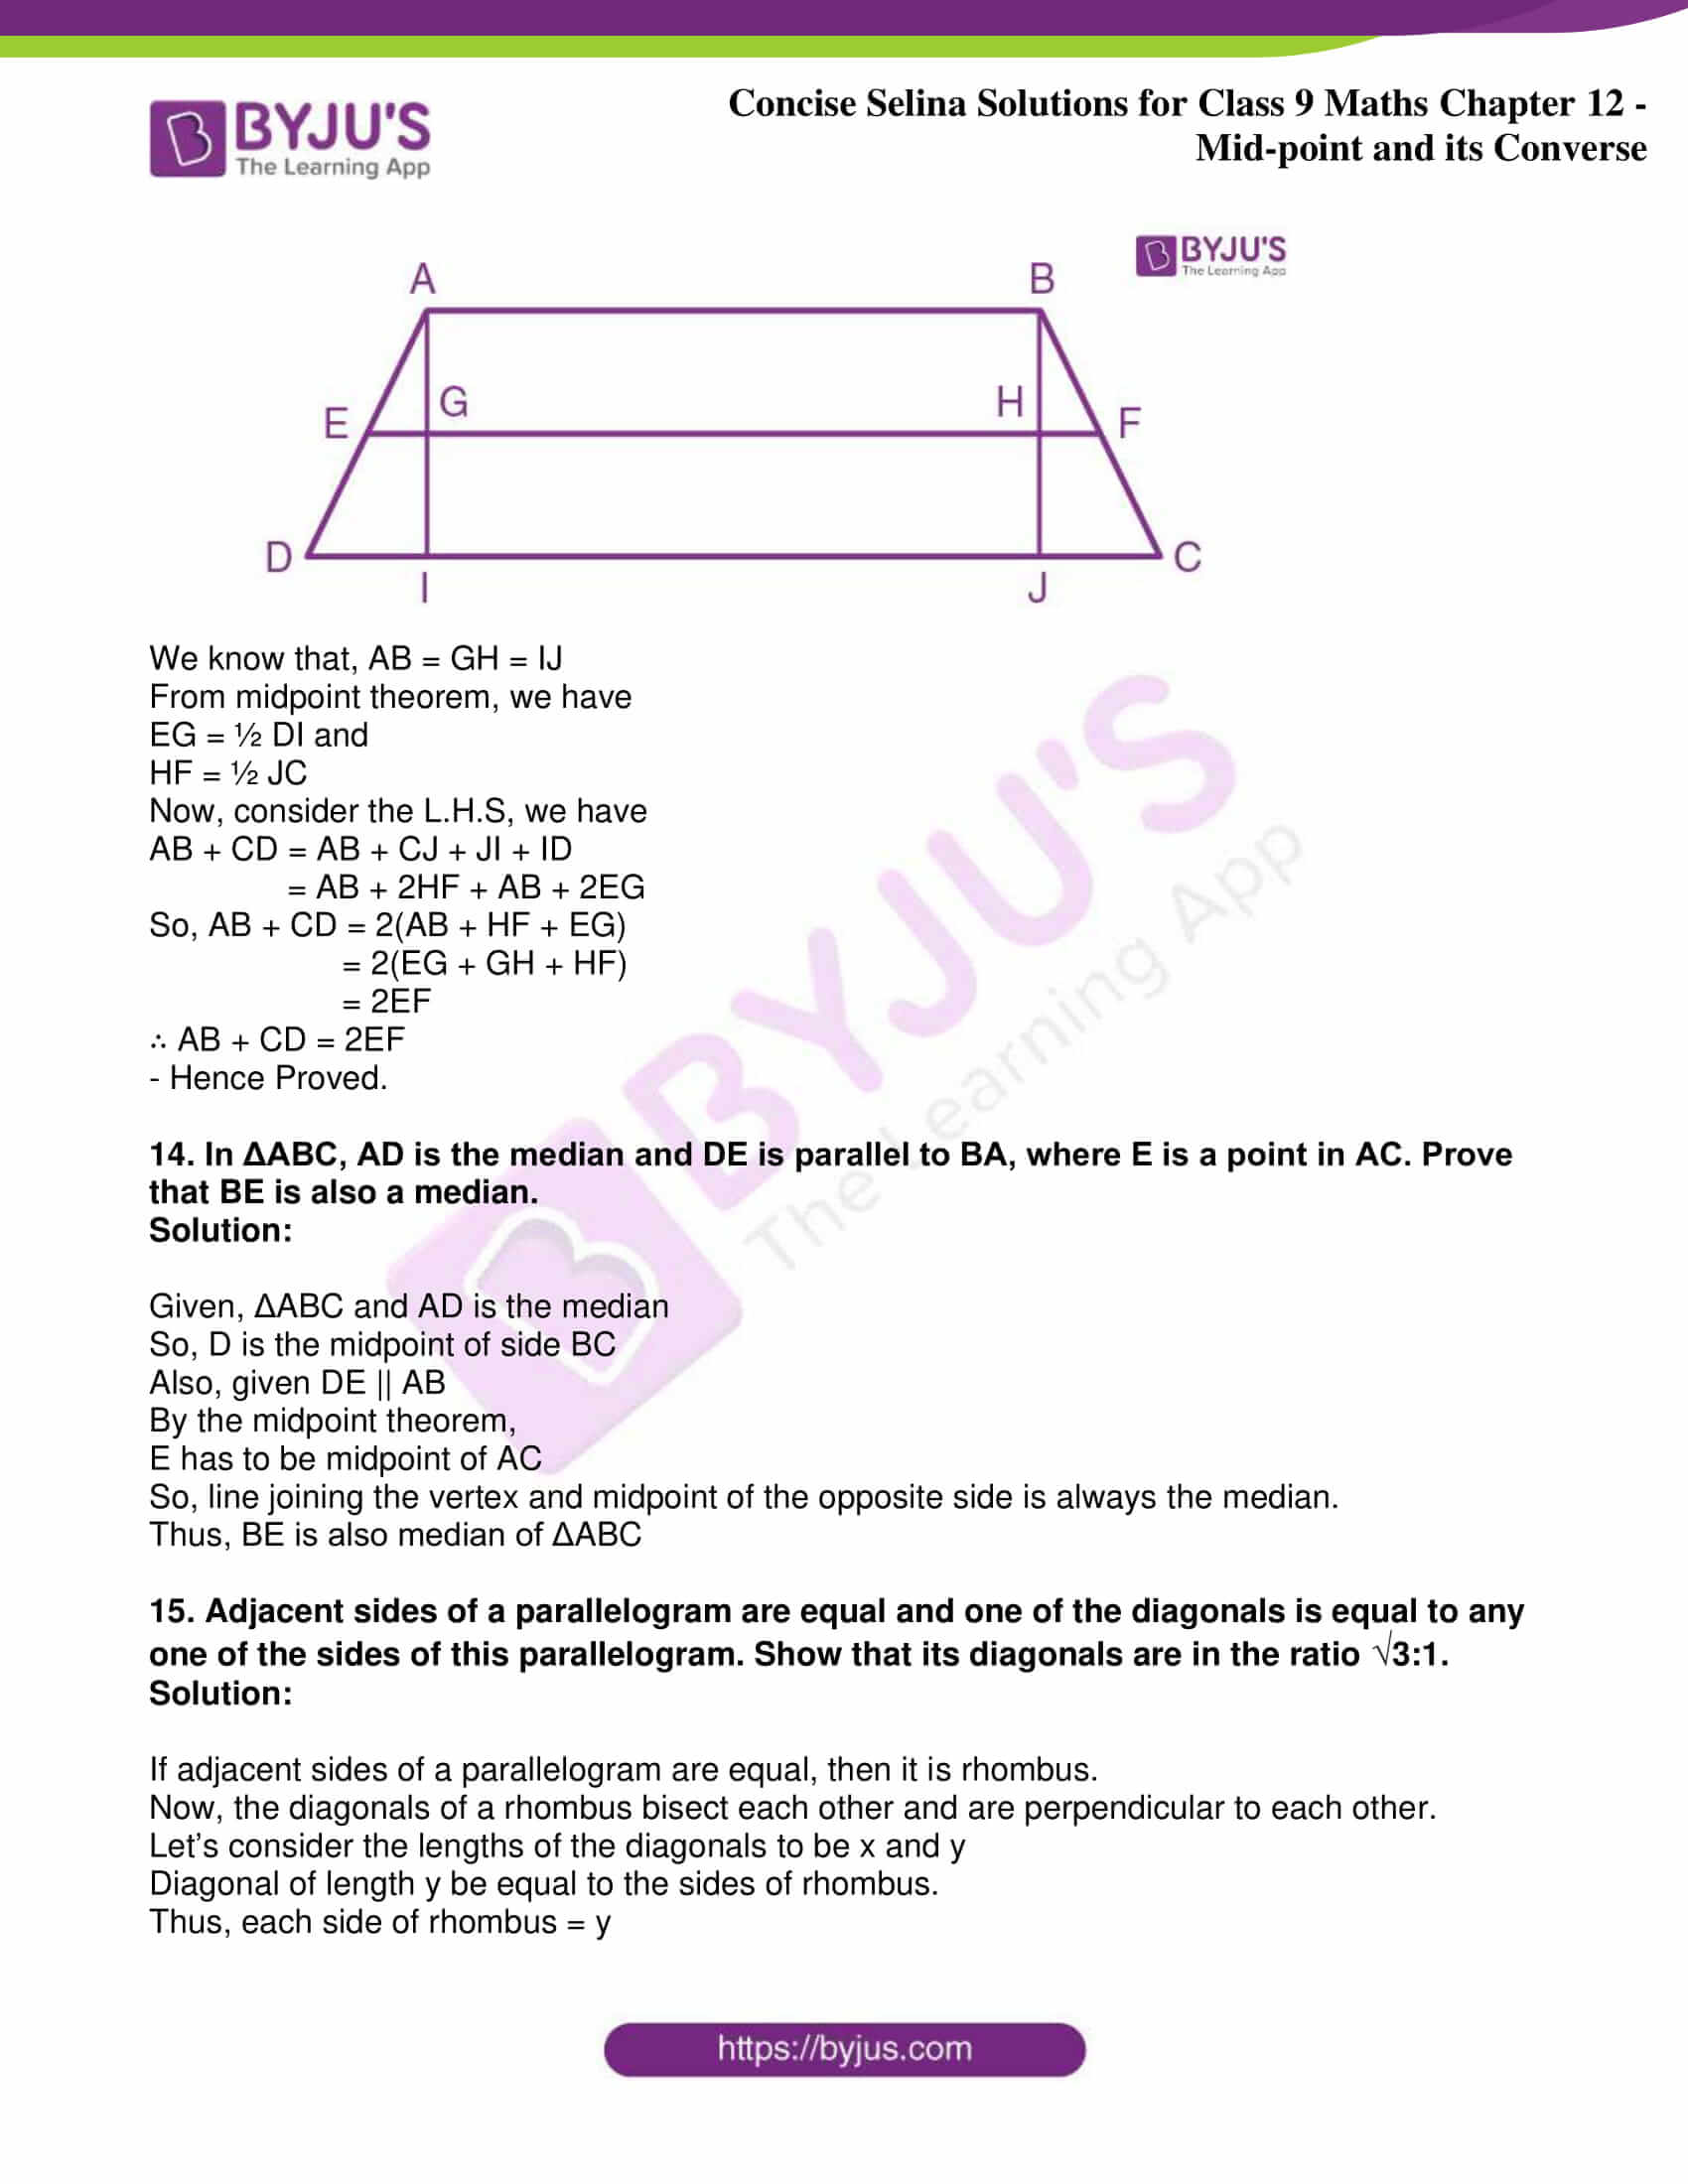 icse class 9 jun8 maths selina solutions chapter 12 midpoint and its converse 25